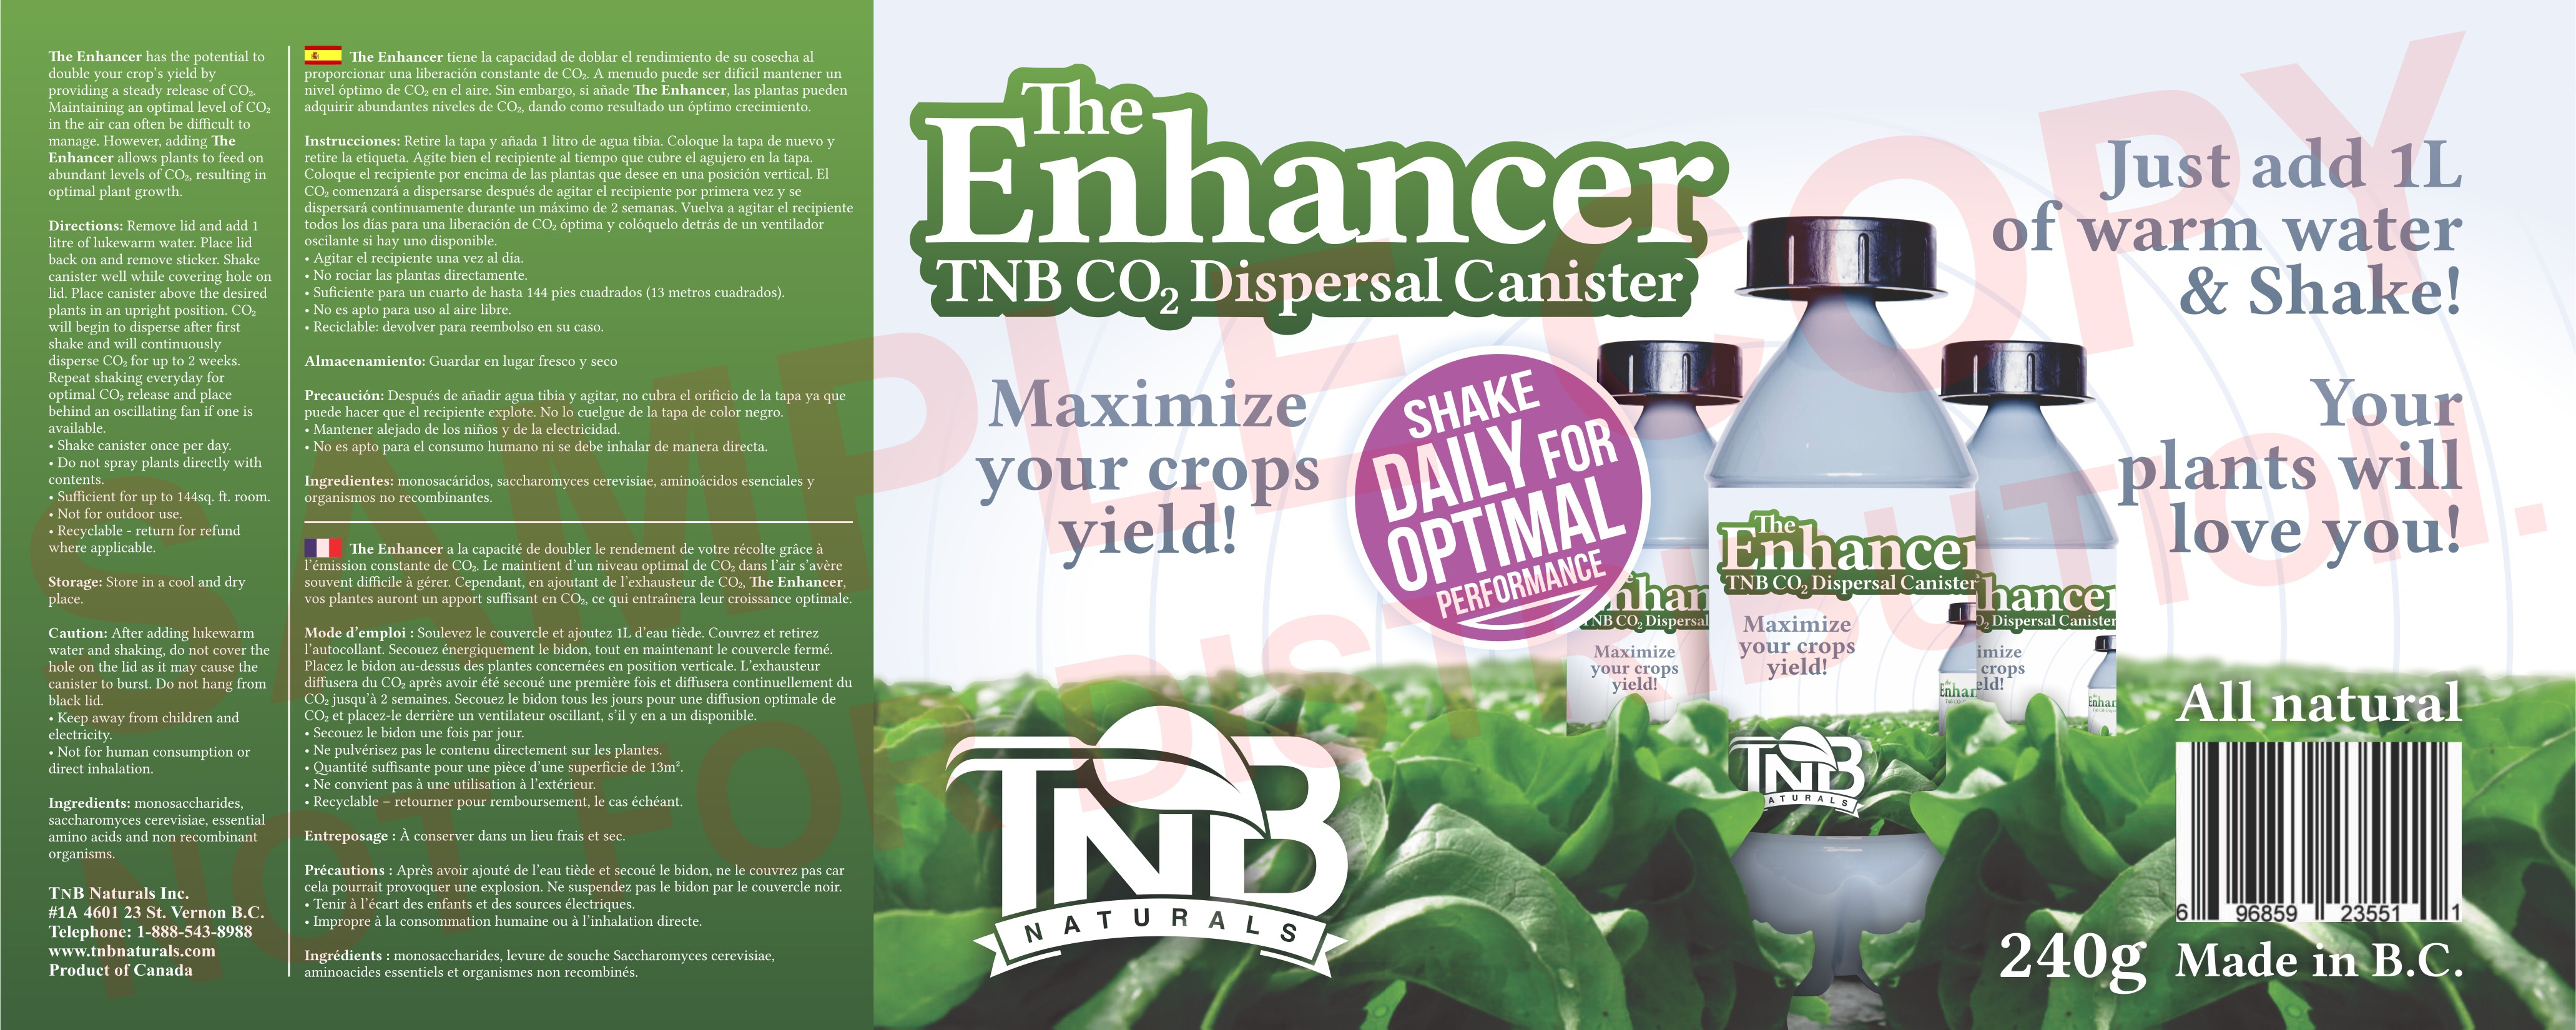 The Enhancer Product Label